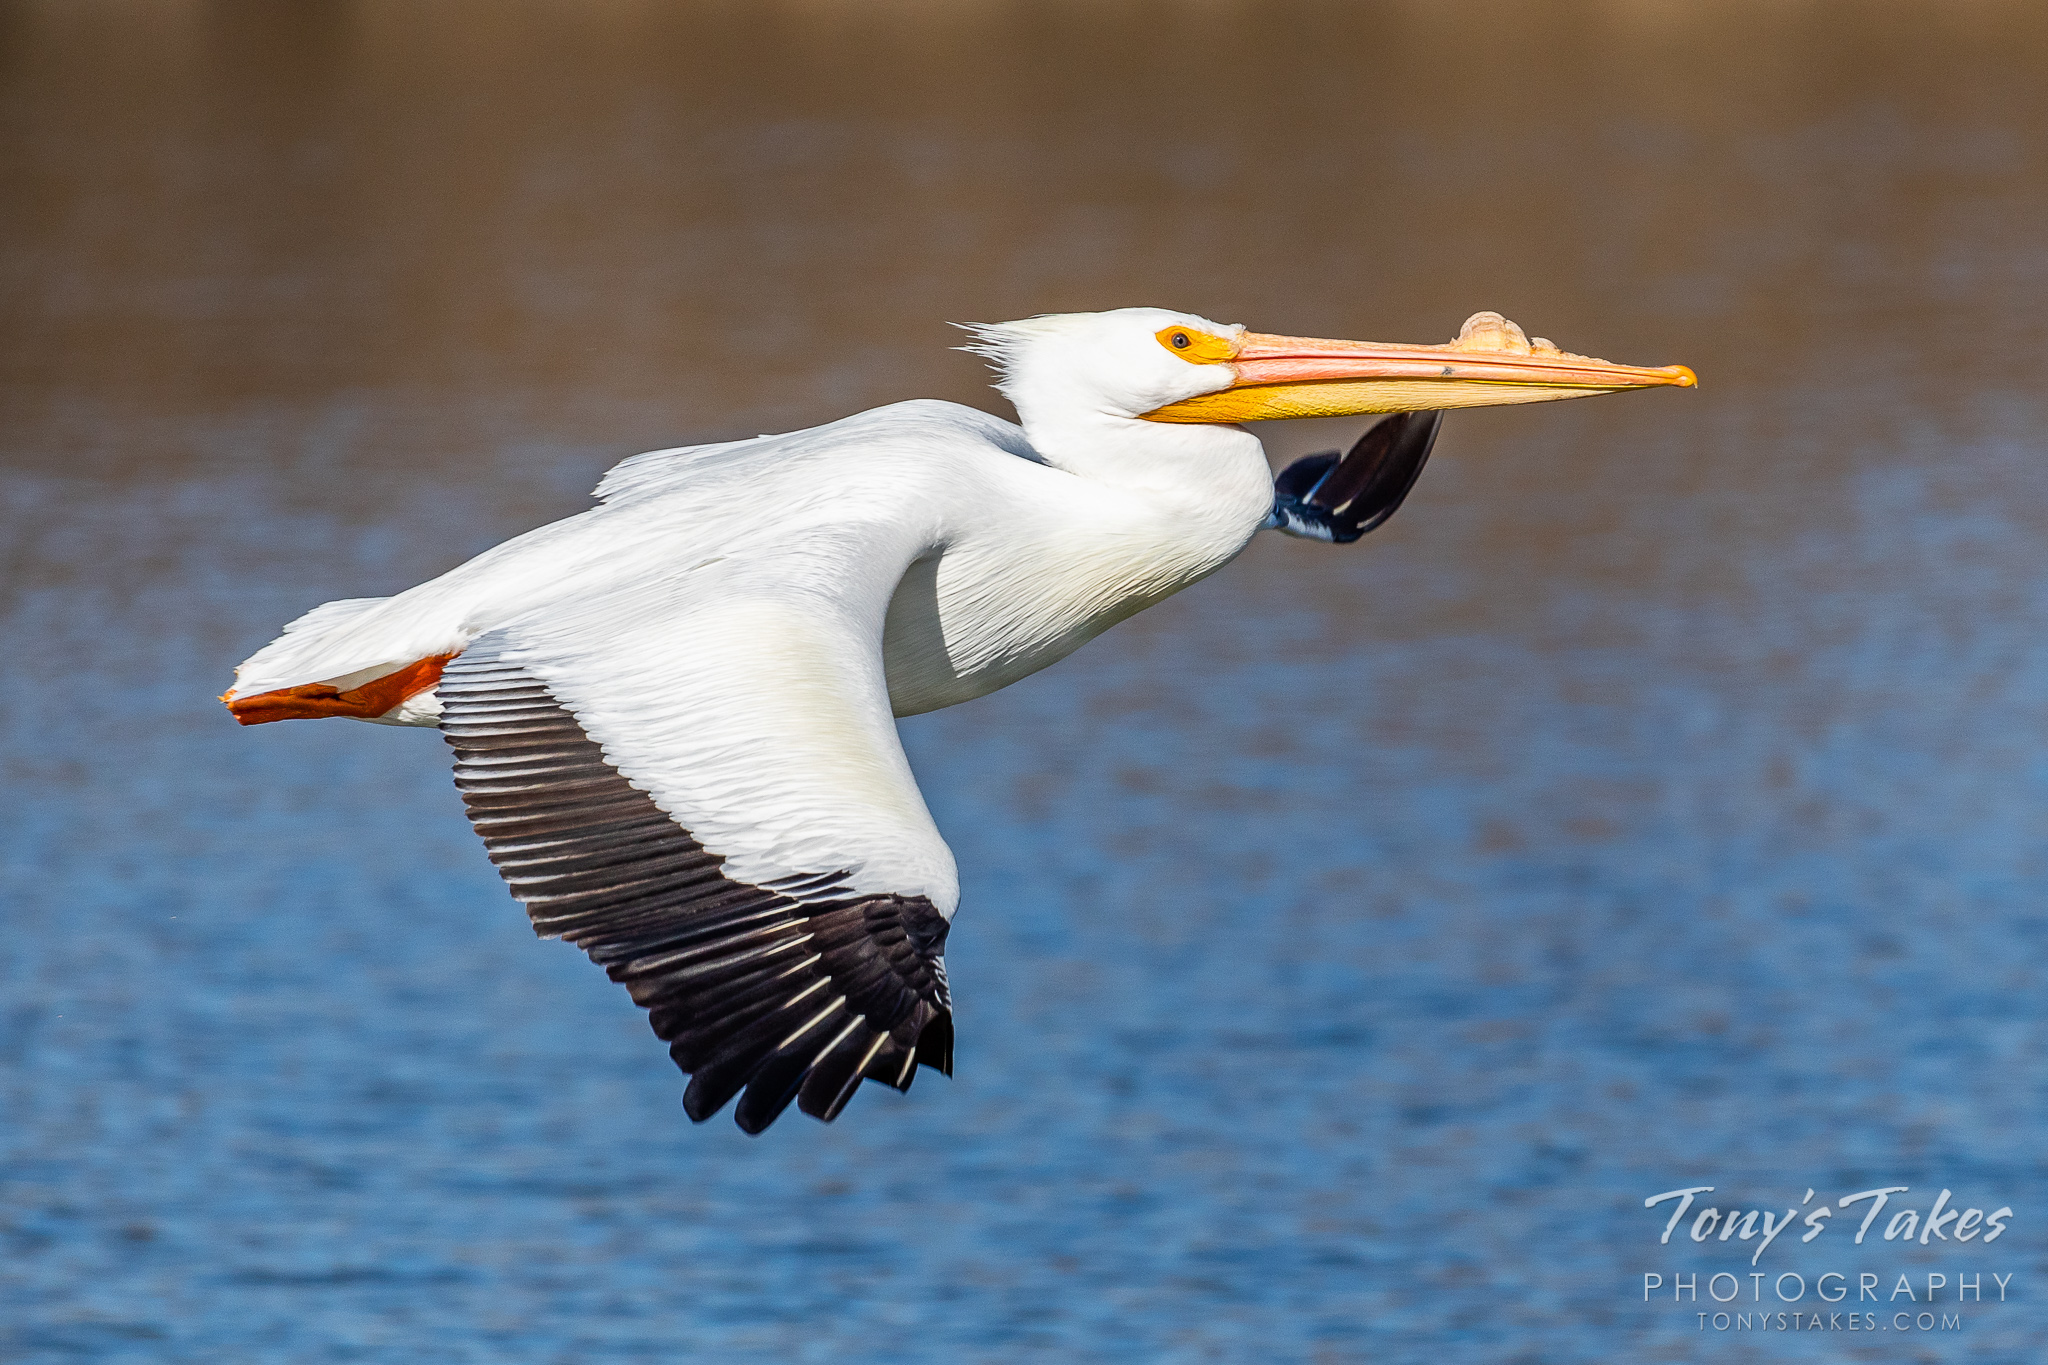 An American white pelican arrives on the plains of Colorado after a winter spent further south. (© Tony's Takes)